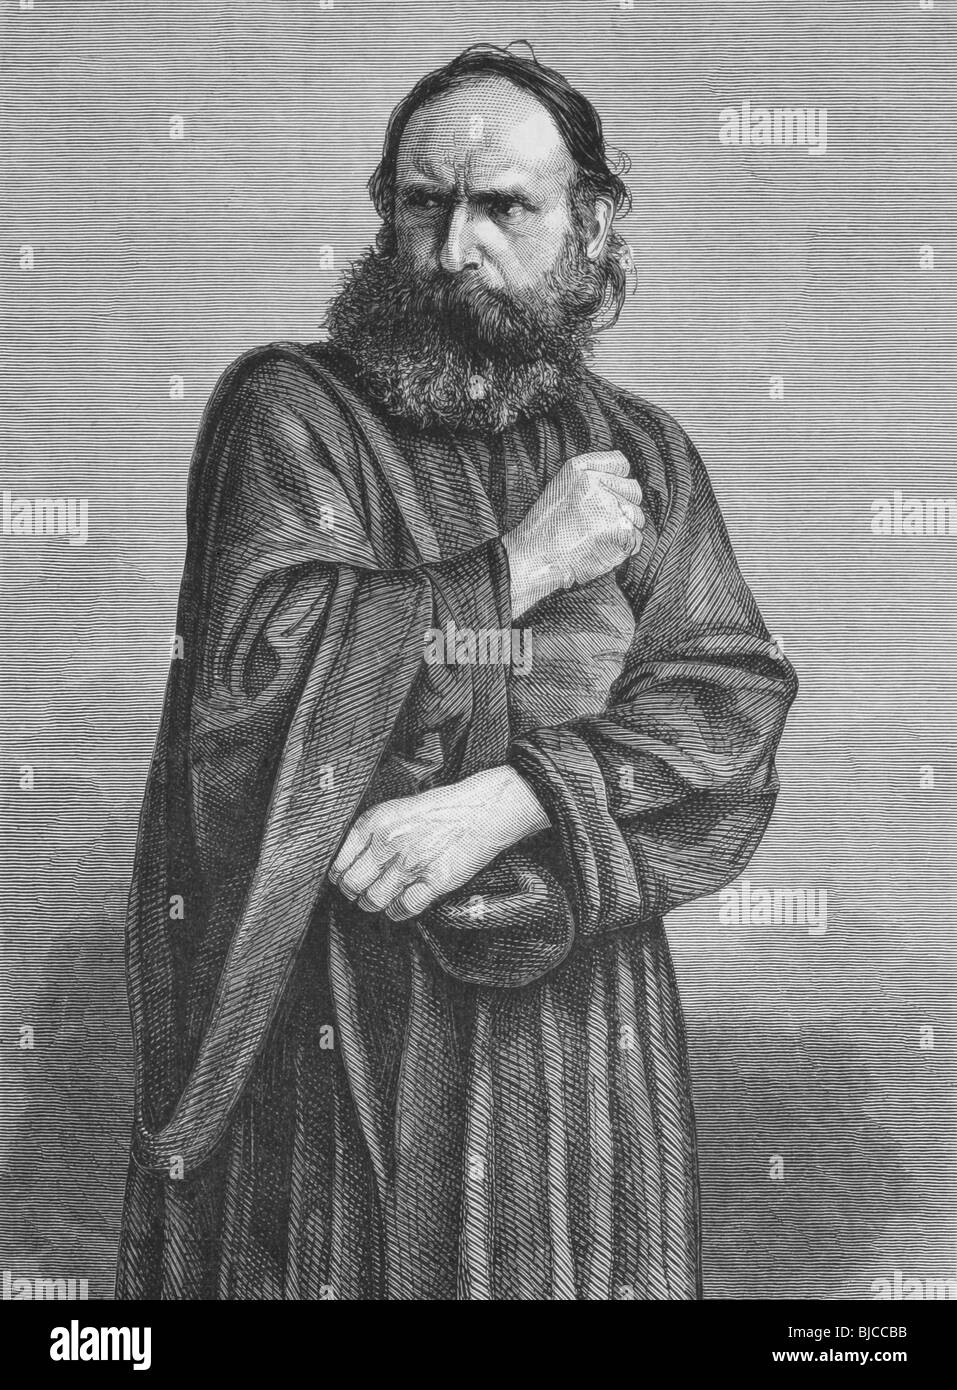 Judas on engraving from the 1800s. Perfomed by George Lechner in the Oberammergau Passion Play. Published in the Stock Photo